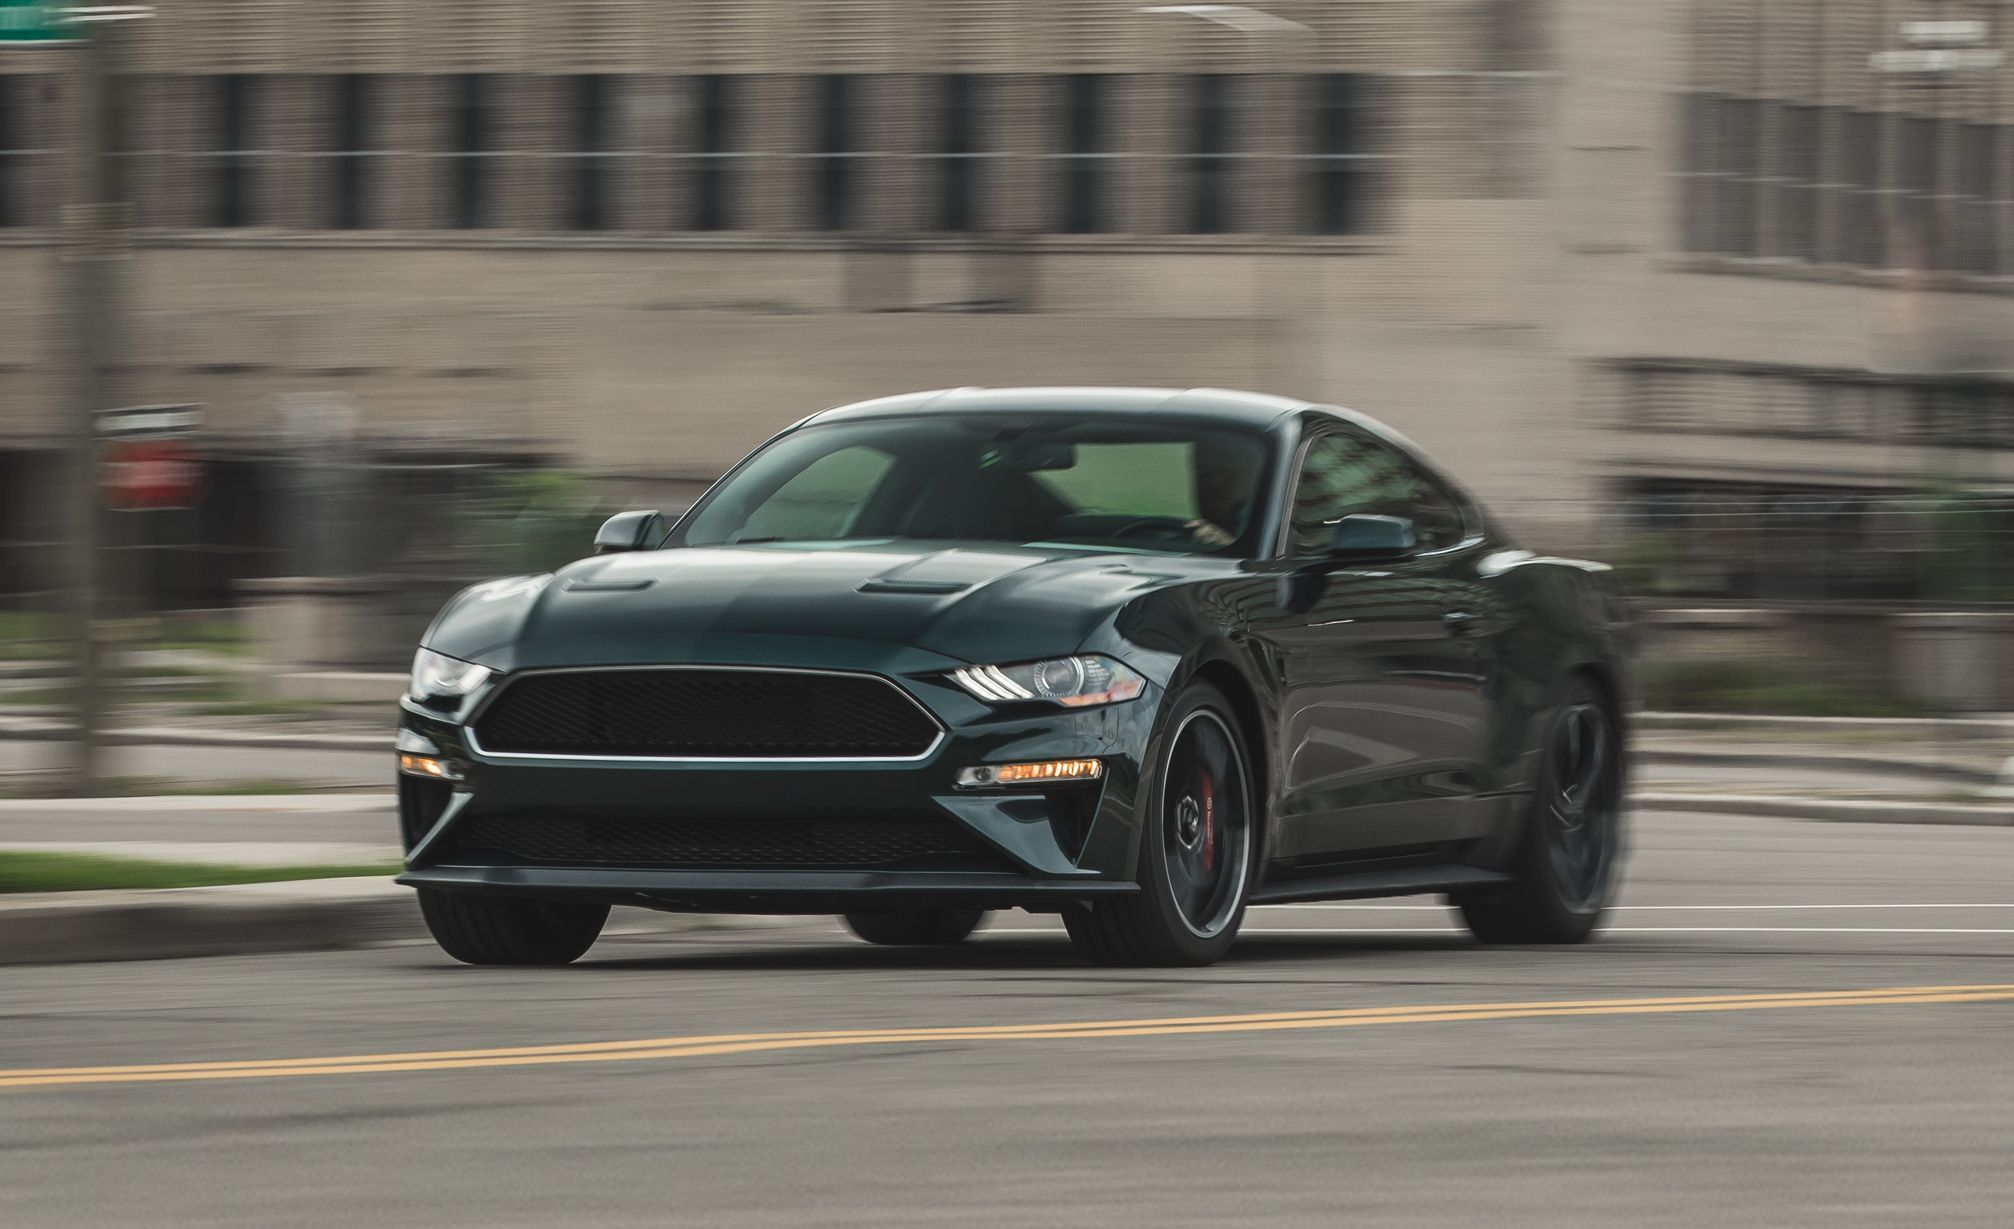 Ford Mustang Bullitt Forget Mcqueen Just Drive The Car